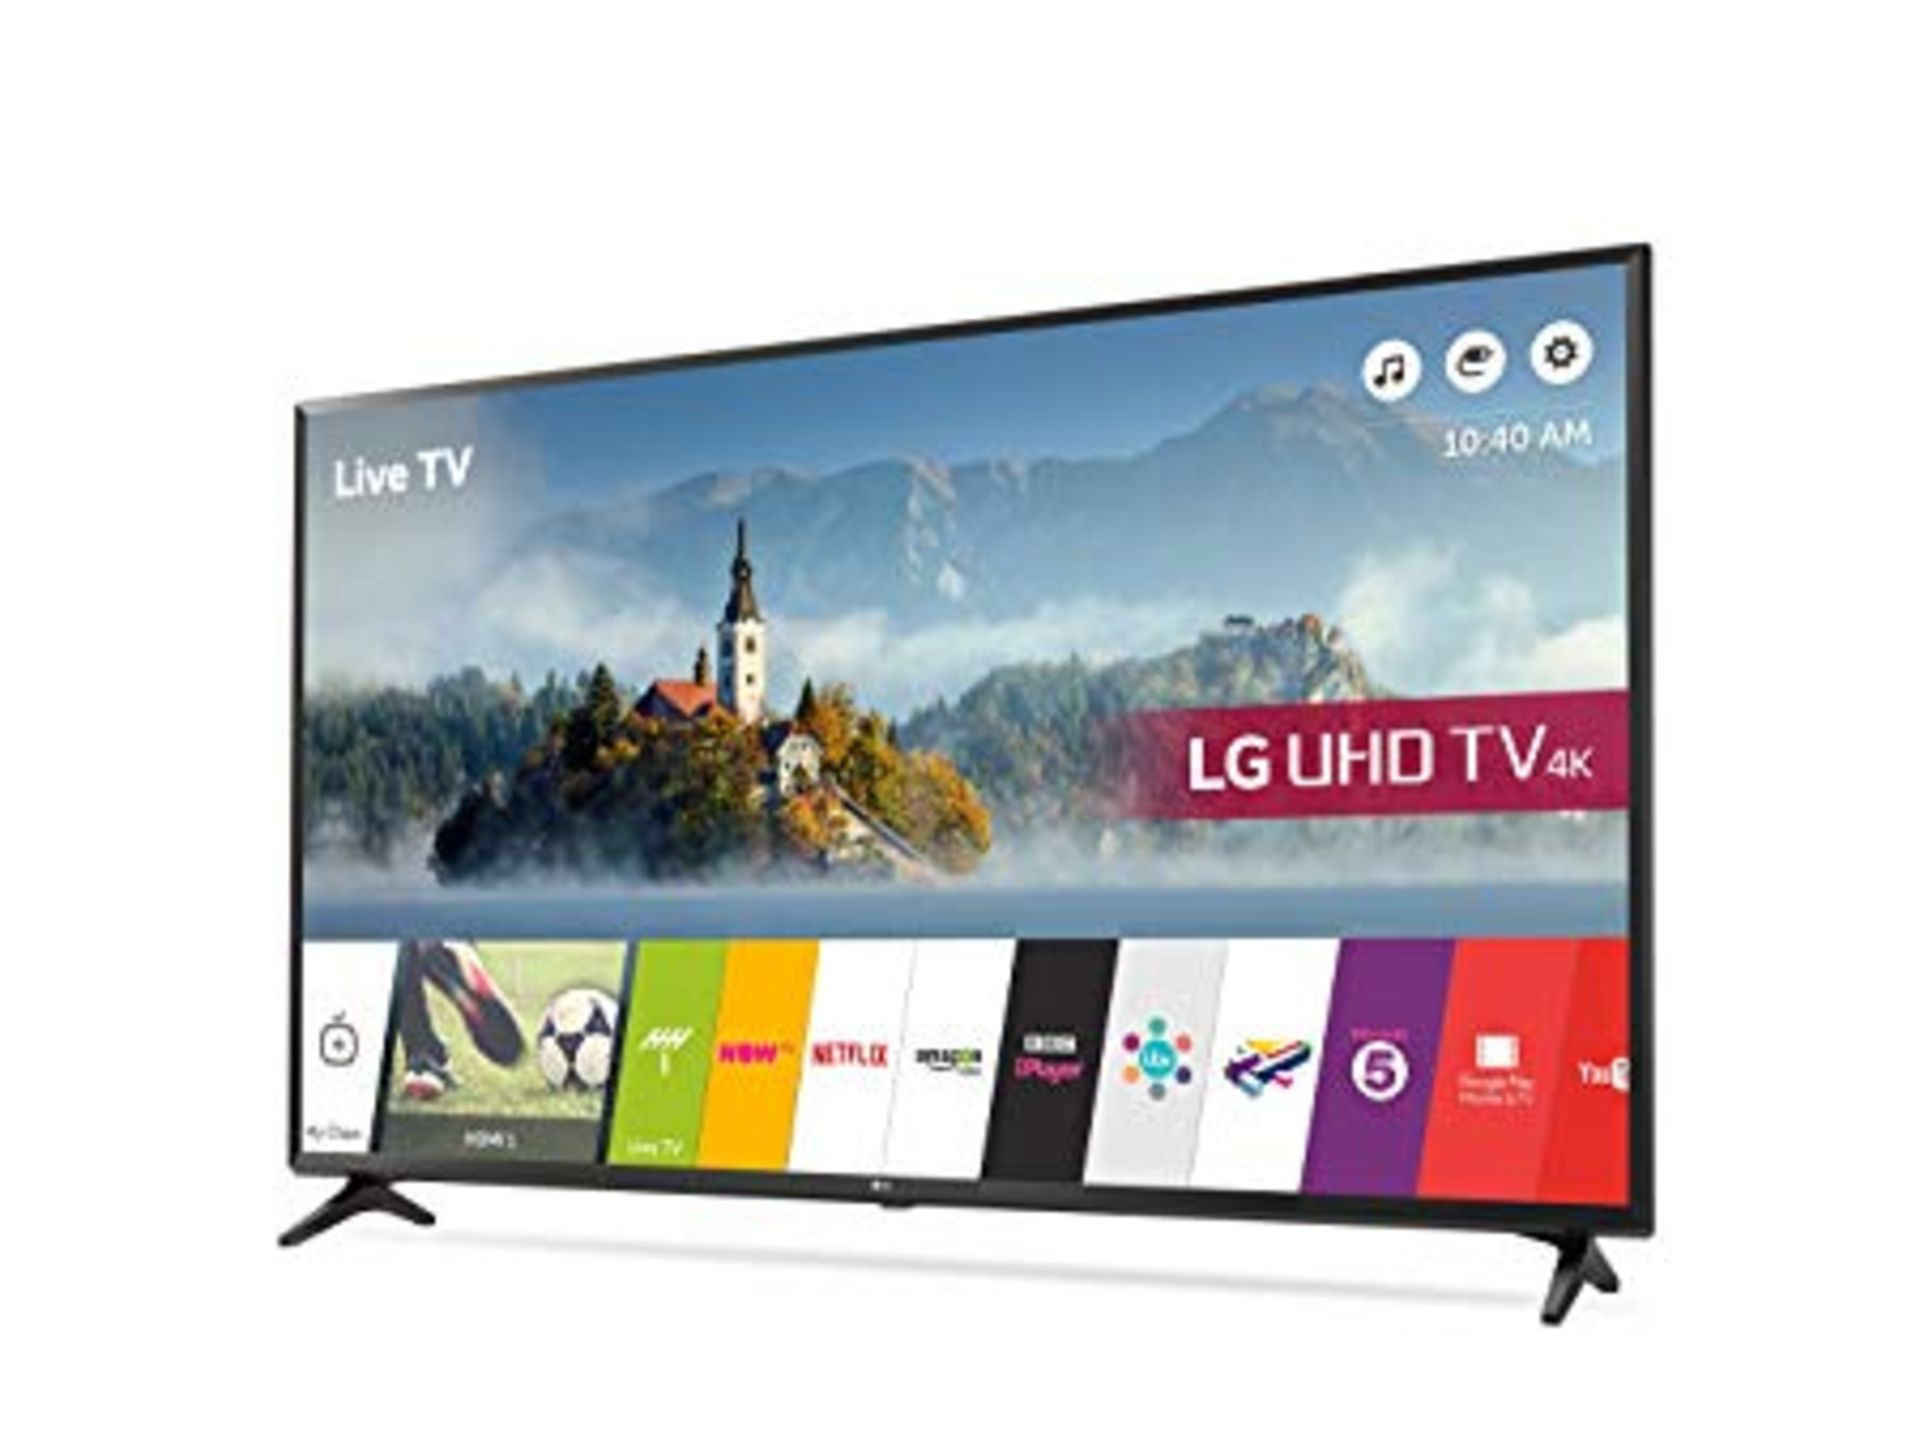 V Grade A LG 49 Inch ACTIVE HDR 4K ULTRA HD LED SMART TV WITH FREEVIEW HD & WEBOS 3.0 & WIFI